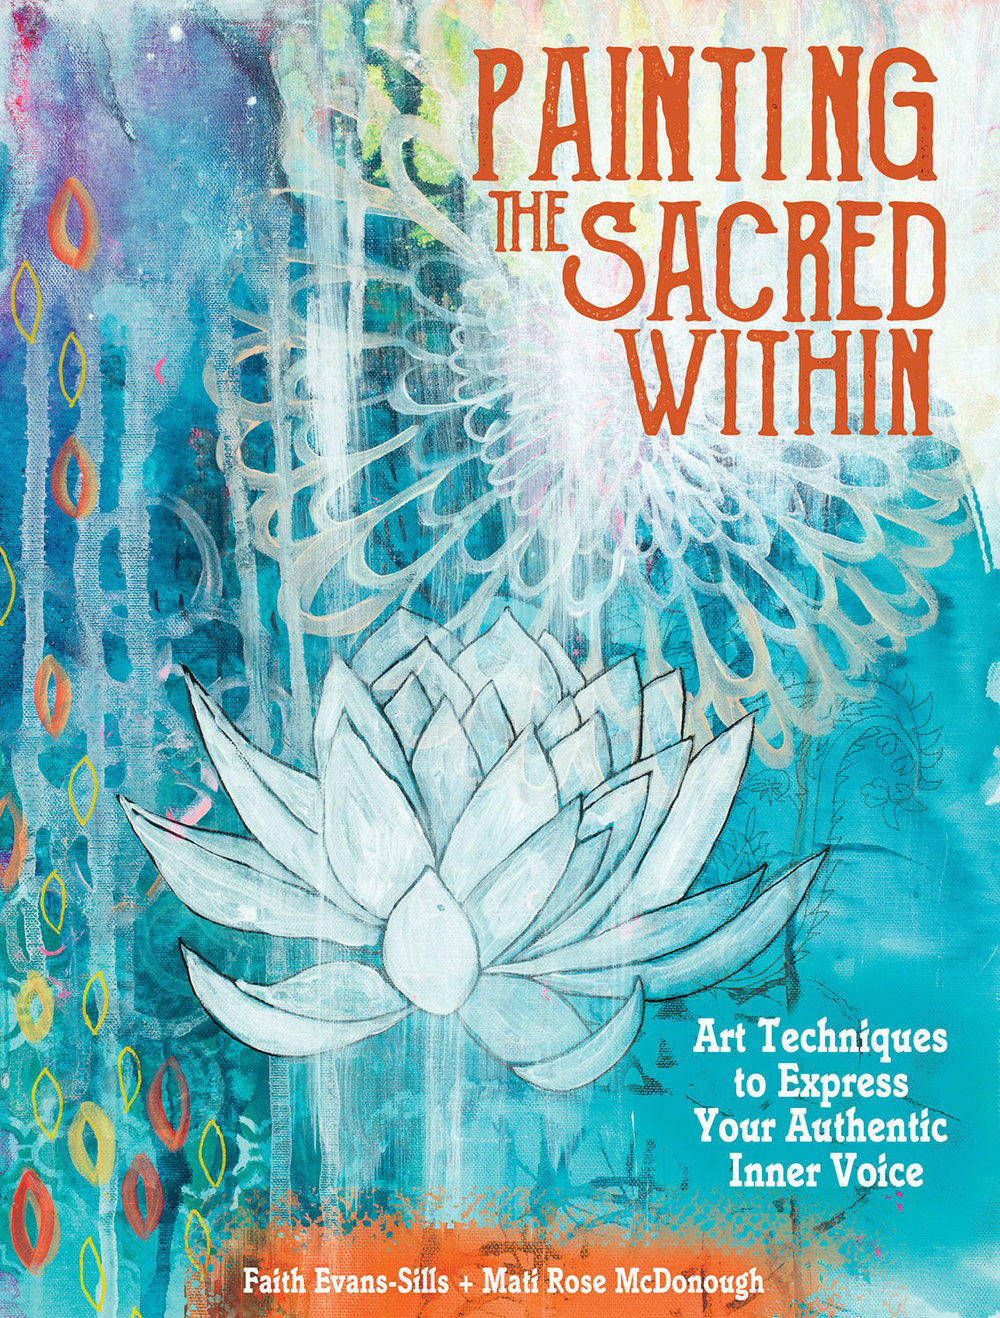 Painting The Sacred Within by Faith Evans-Sills and Mati Rose McDonough